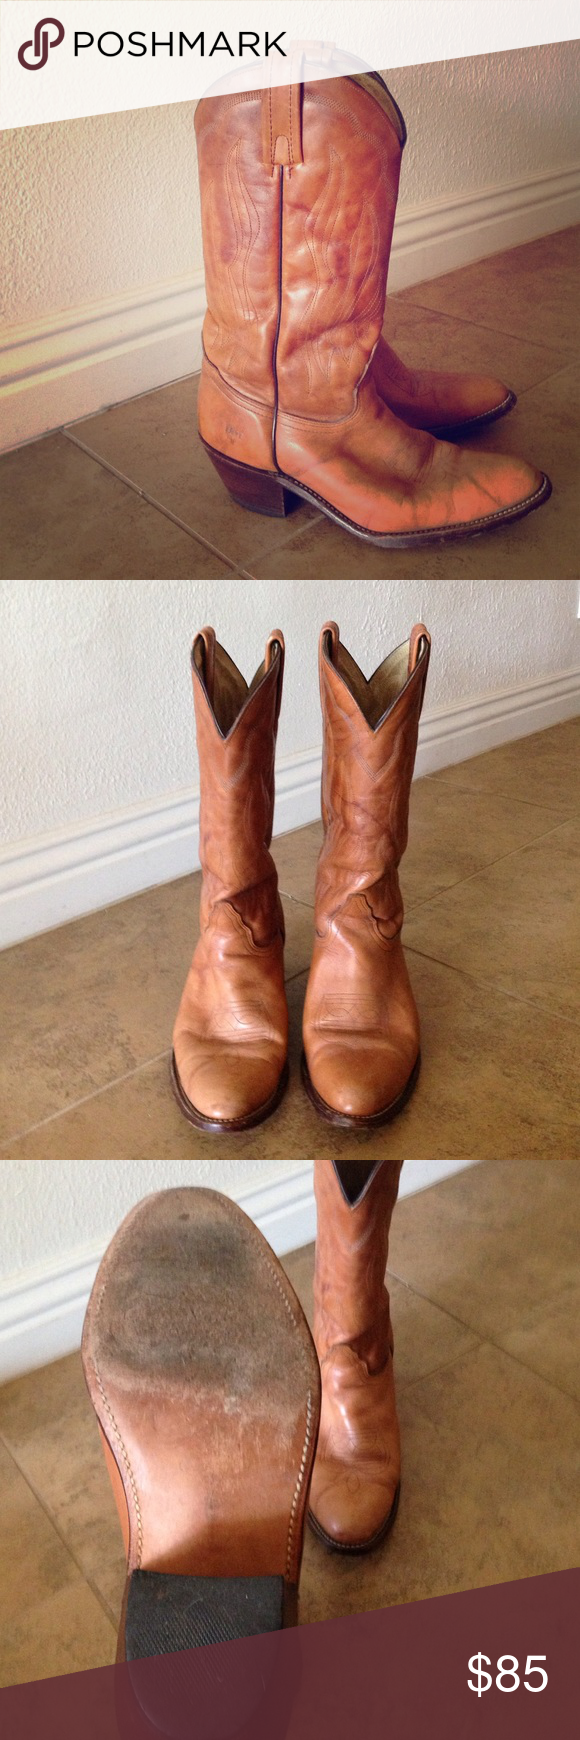 Frye Boots Classic Cowboy(girl) boots. Frye, worn, in good condition. No scuffs. Left inside pull strap slightly worn. An excellent, classic addition to any wardrobe. Women's size 10, roomy 🔮 Frye Shoes Heeled Boots